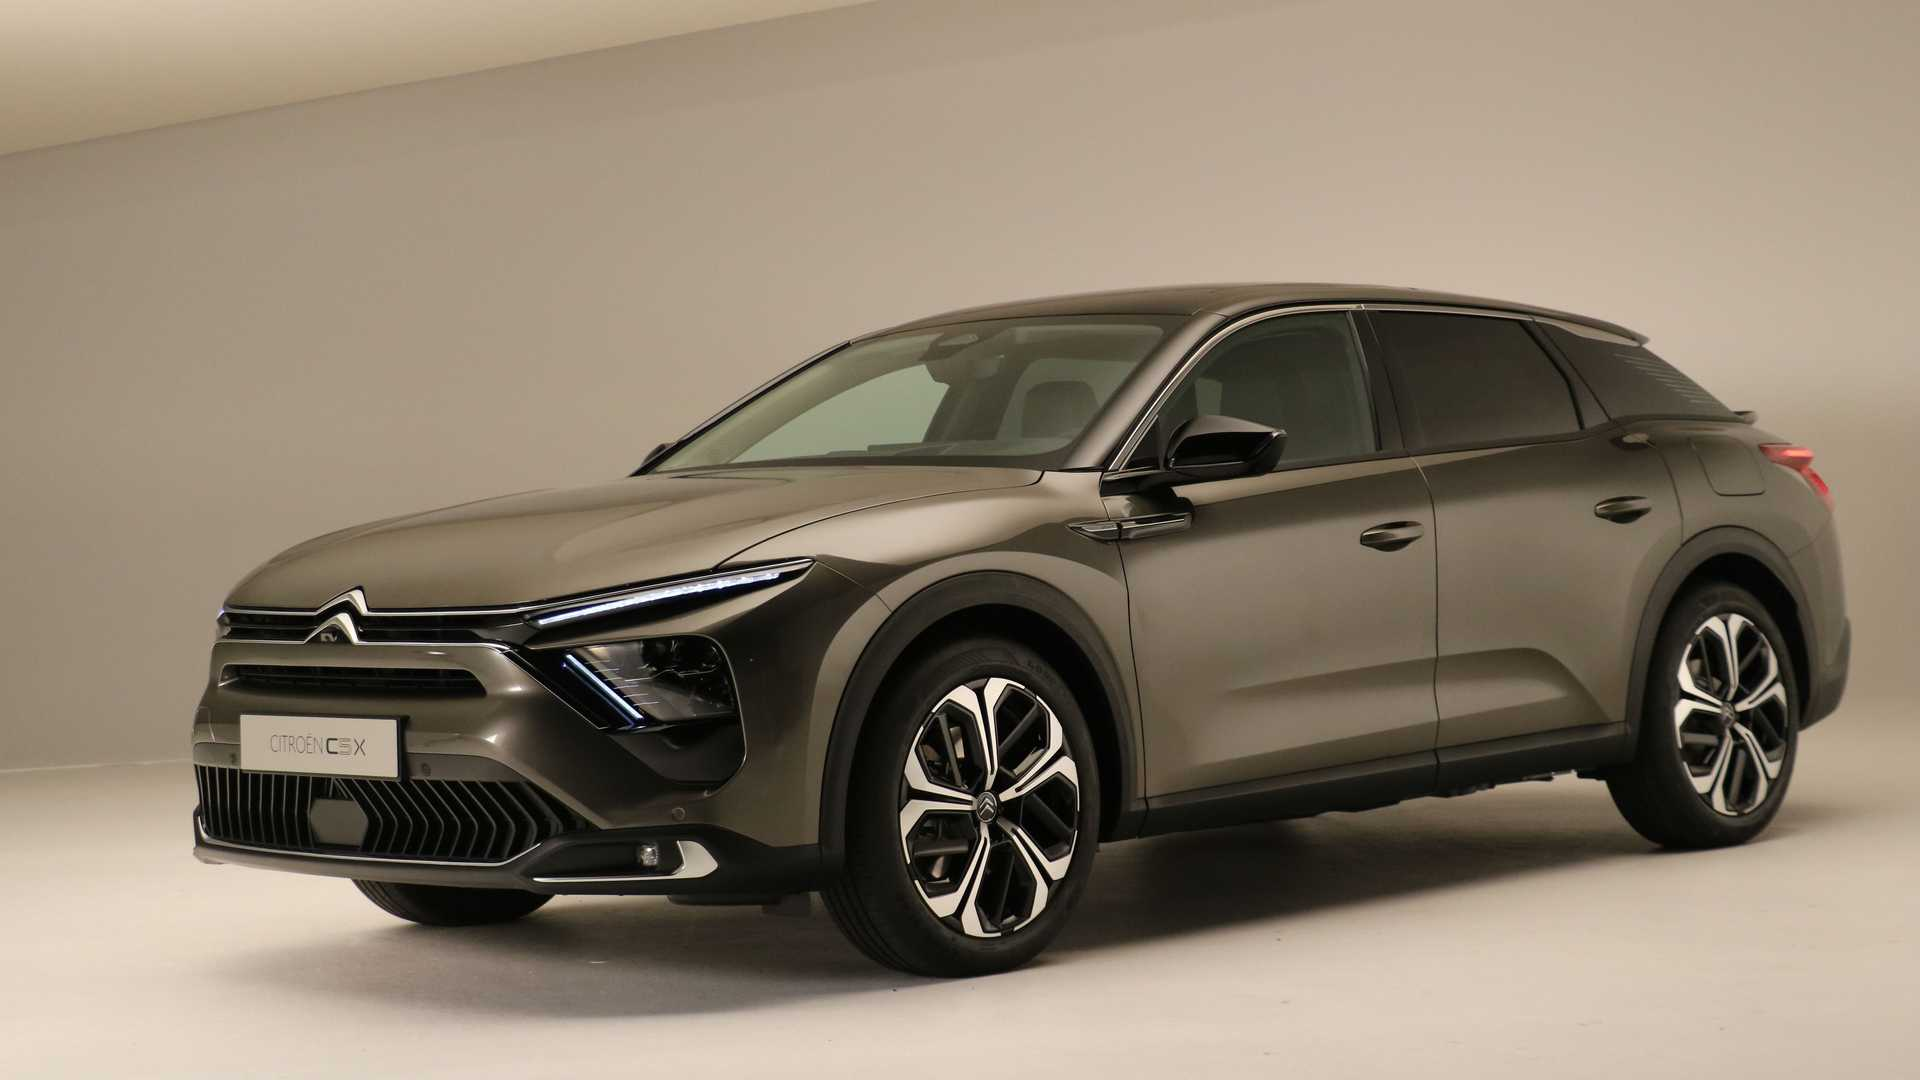 New Citroen C5 X Revealed As Part Sedan, Part Wagon, Part SUV